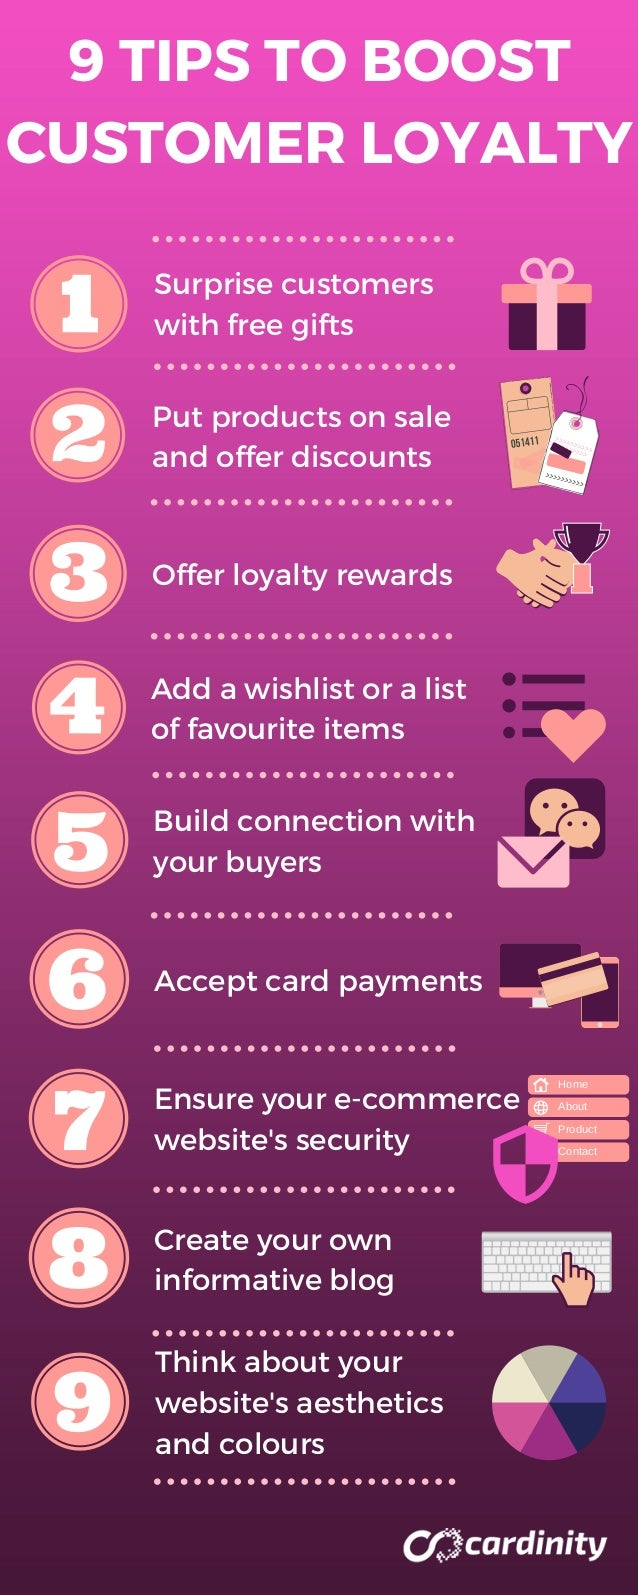 Surprise customers with free gifts 9 TIPS TO BOOST CUSTOMER LOYALTY Put products on sale and offer discounts Offer loyalty...